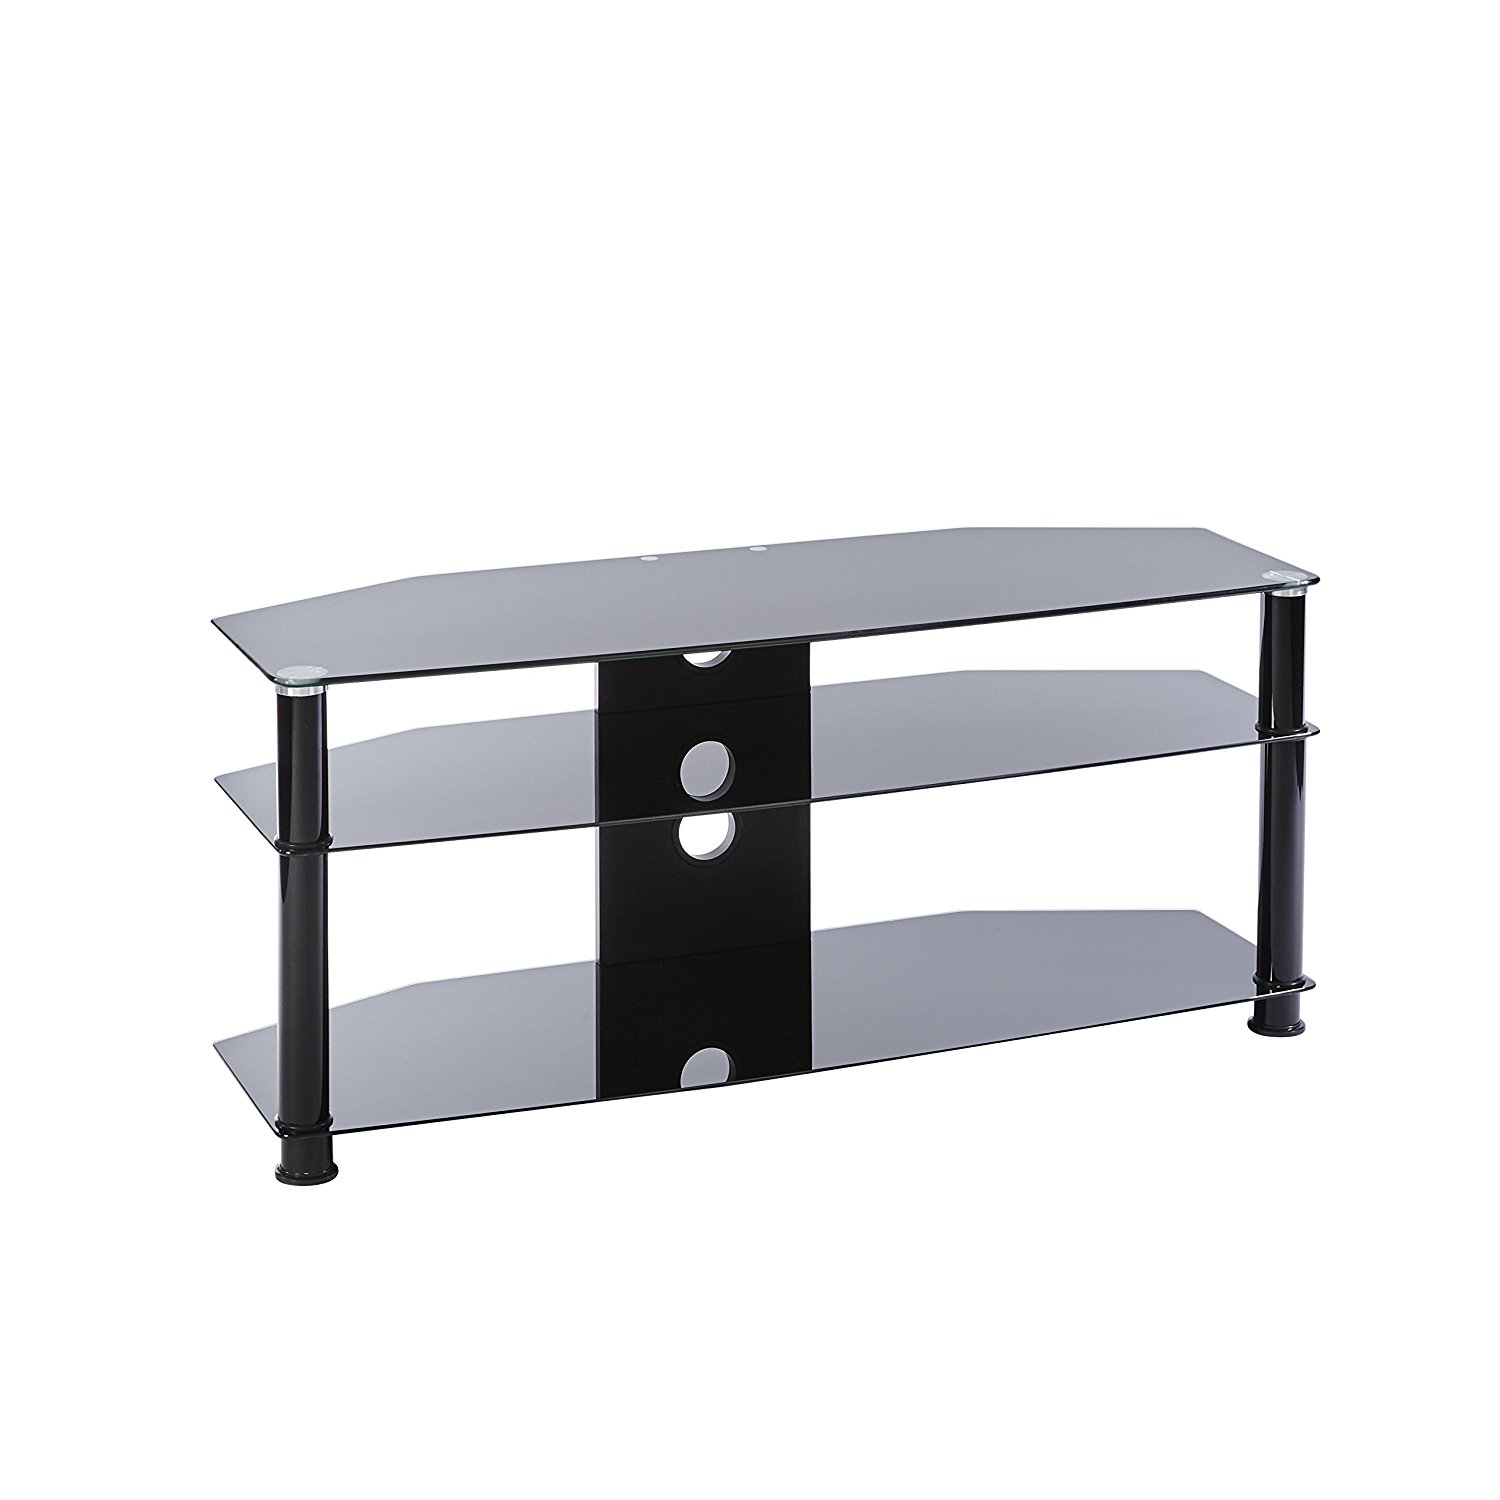 Cheap 55 Inch Corner Tv Stand Find 55 Inch Corner Tv Stand Deals On